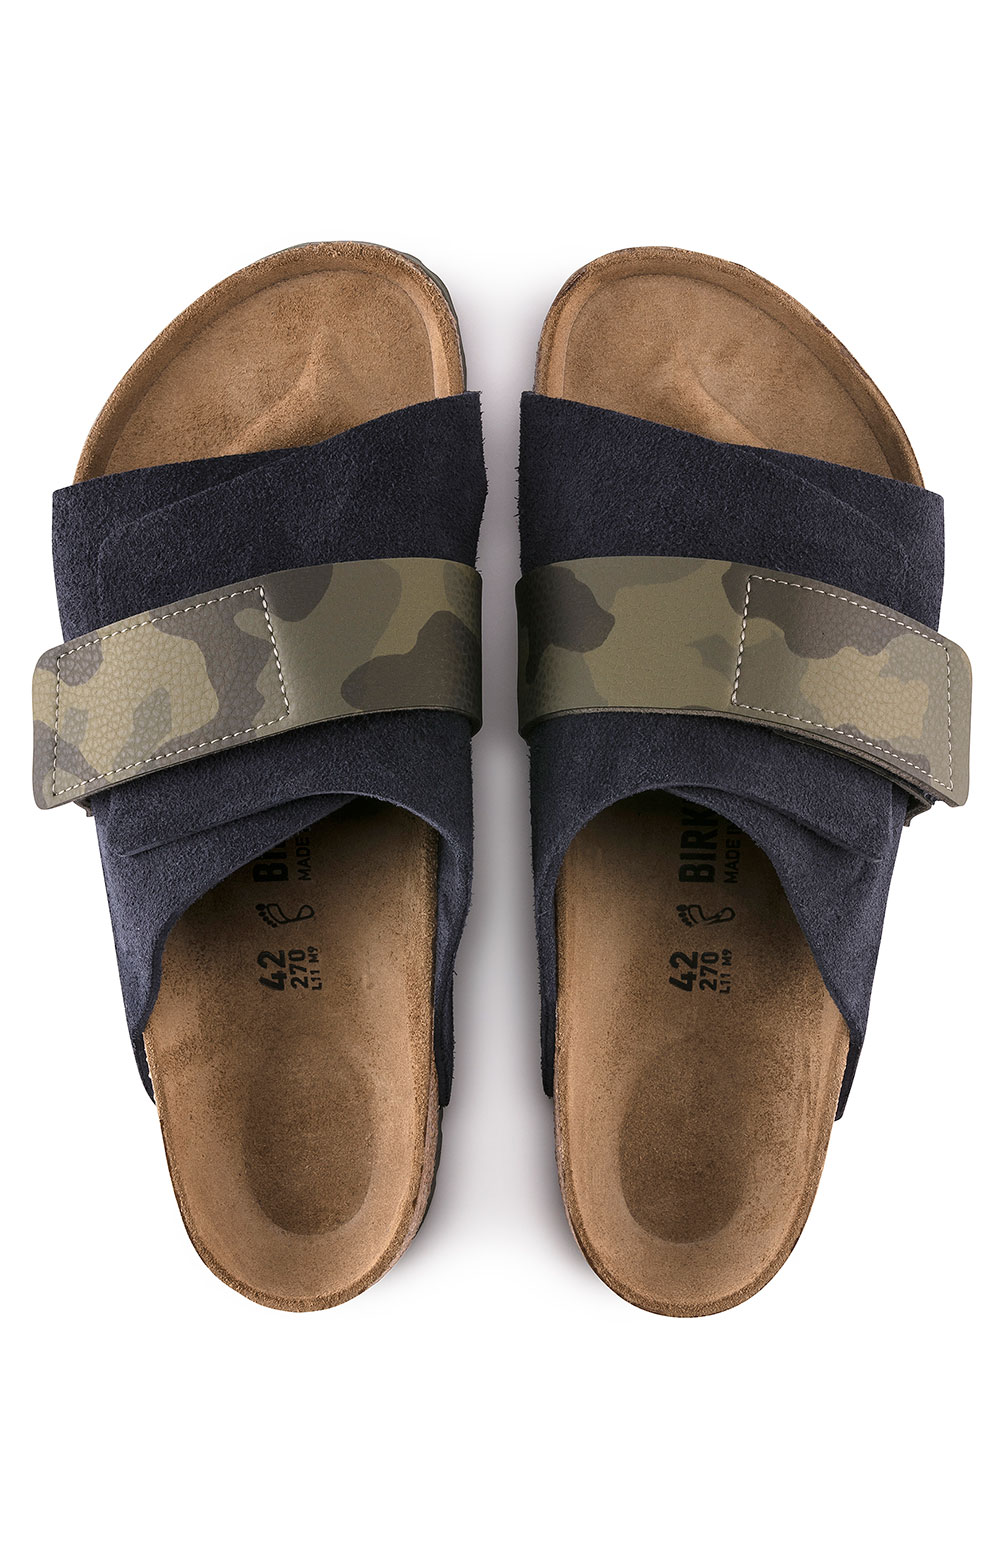 (1019737) Kyoto Sandals - Midnight Camo 5